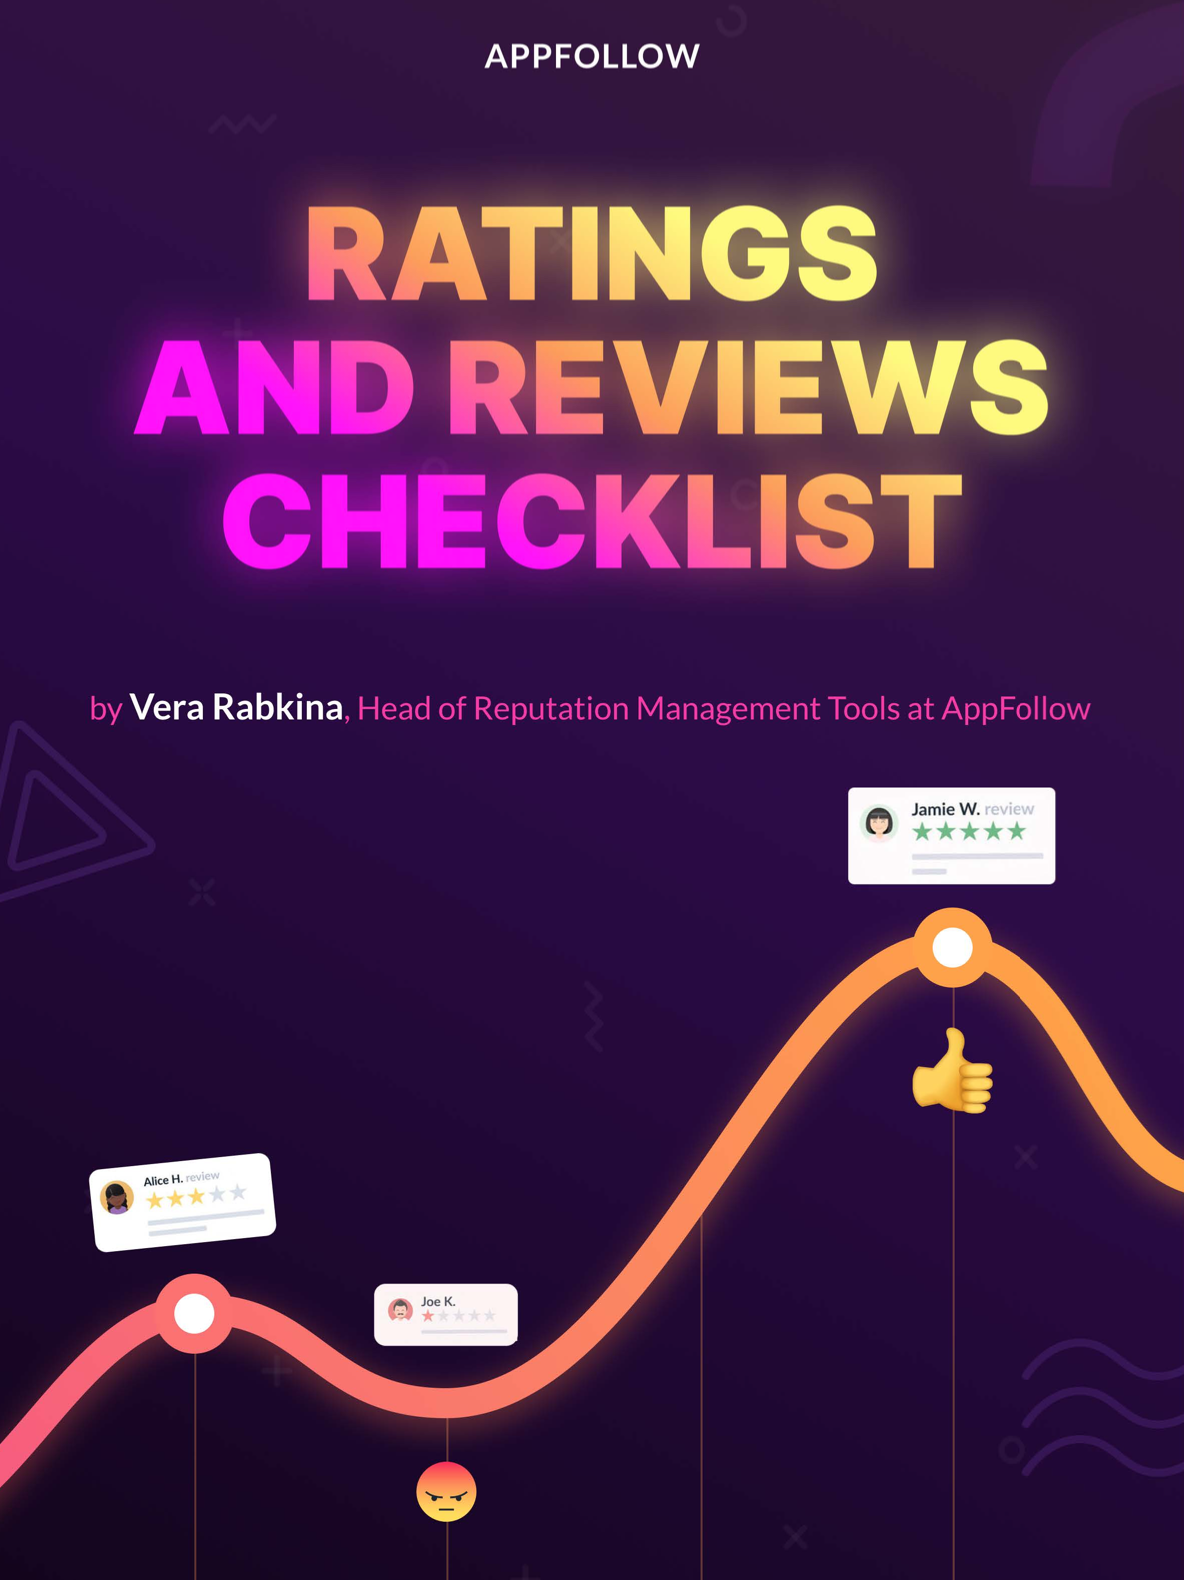 A checklist on how to respond to app store reviews